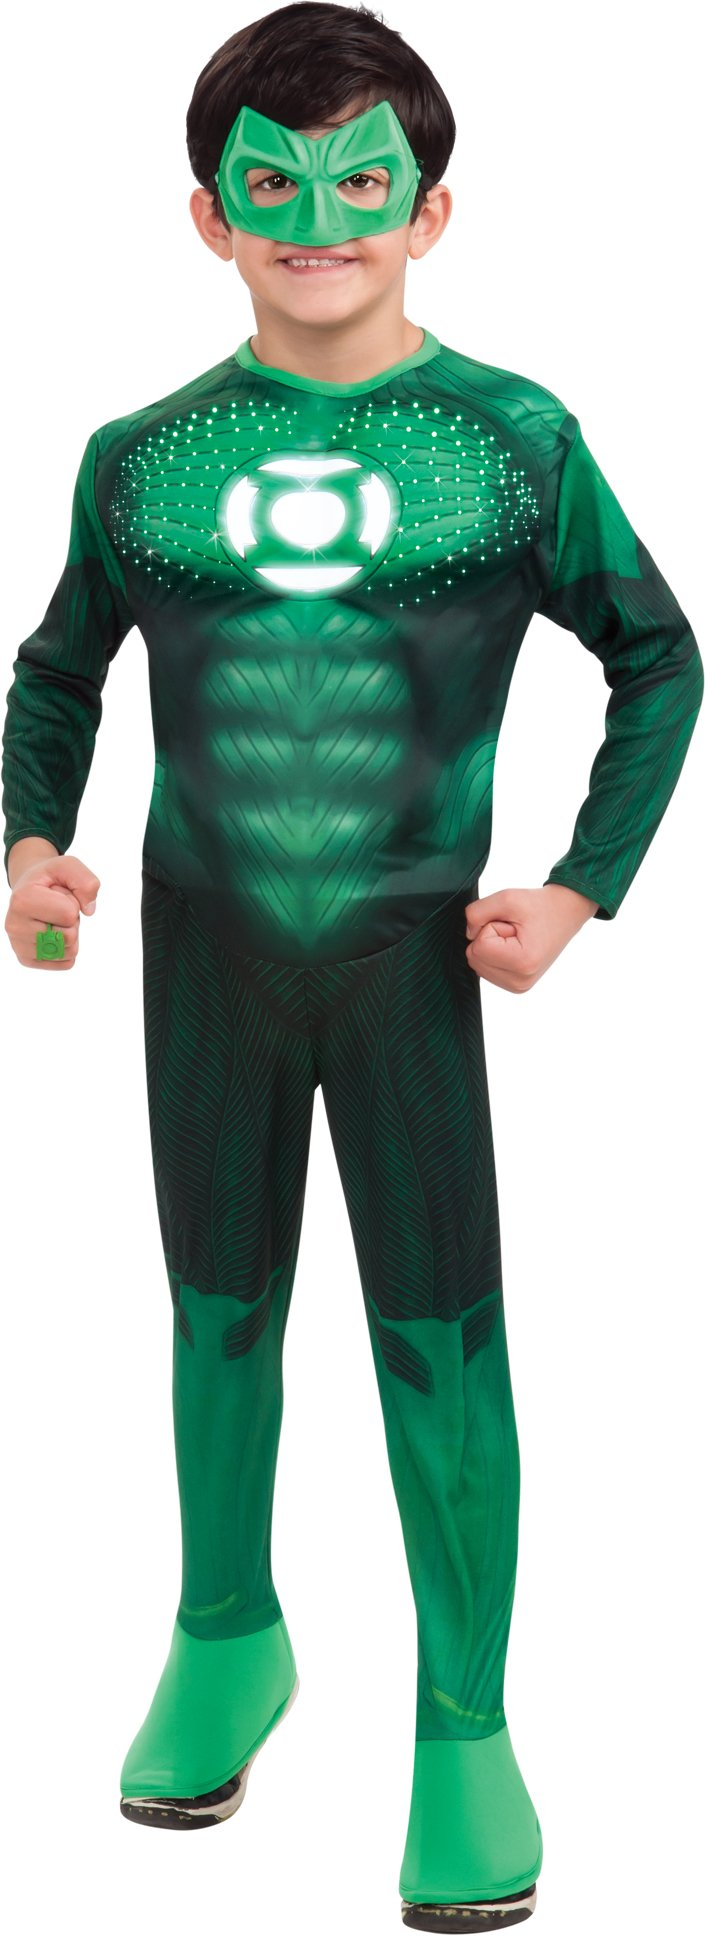 Green Lantern - Hal Jordan Deluxe Light-Up Muscle Child Costume